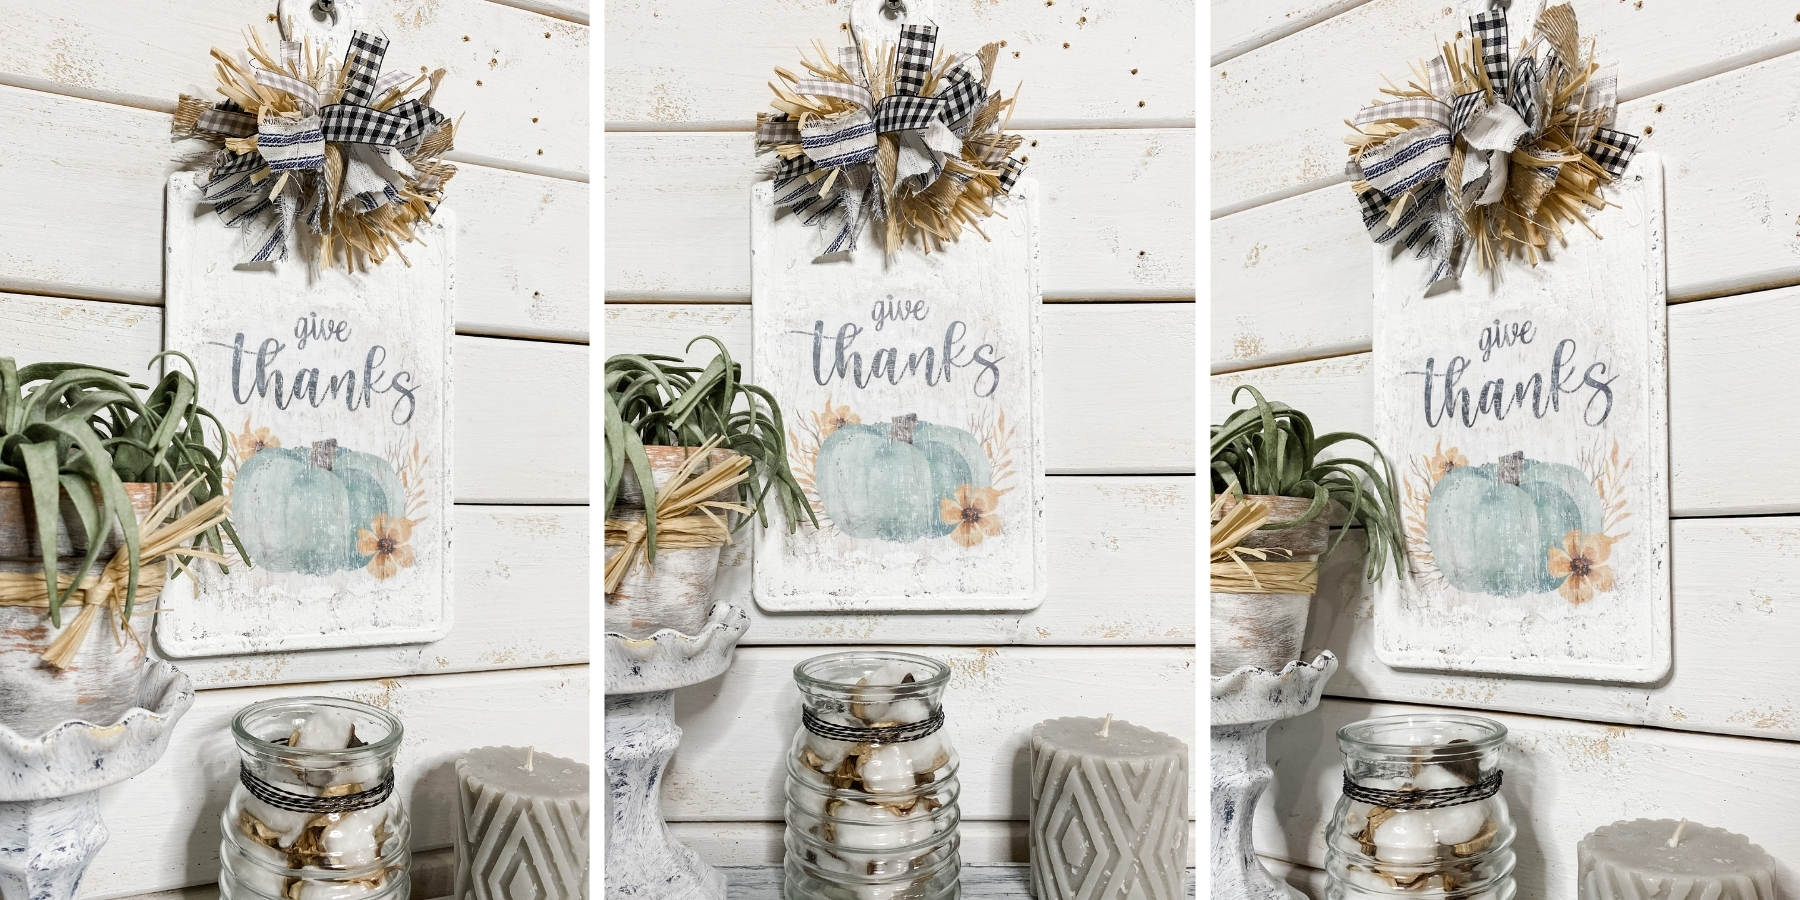 DIY Give Thanks Sign with a Dollar Tree Cutting Board